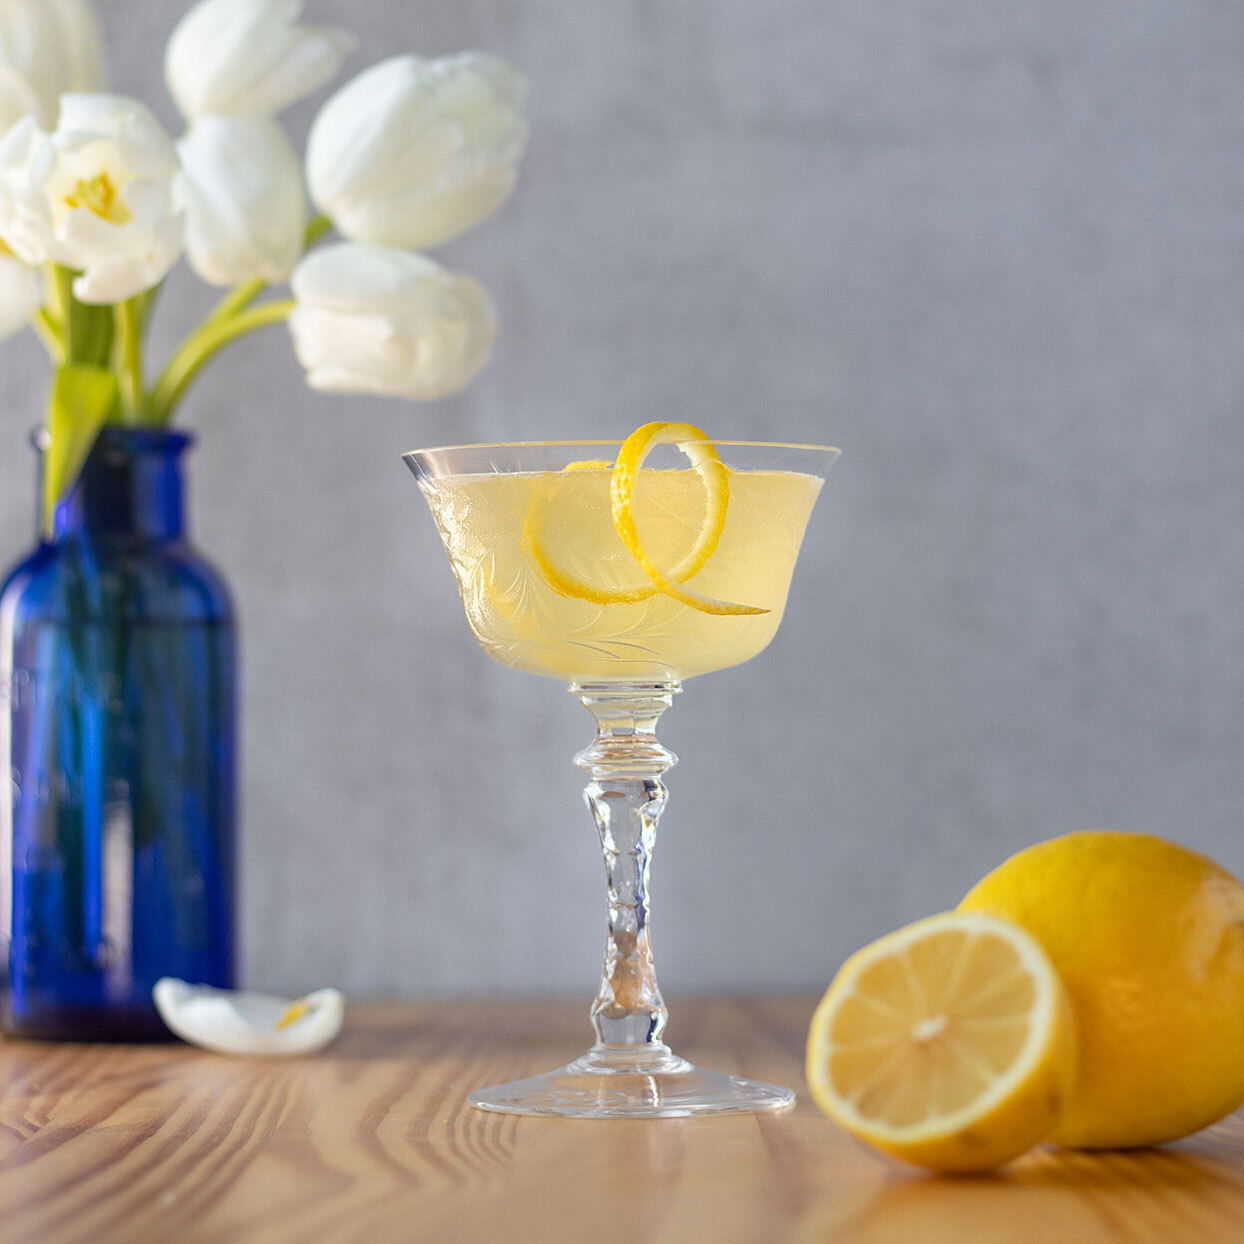 bees knees gin cocktail with lemon